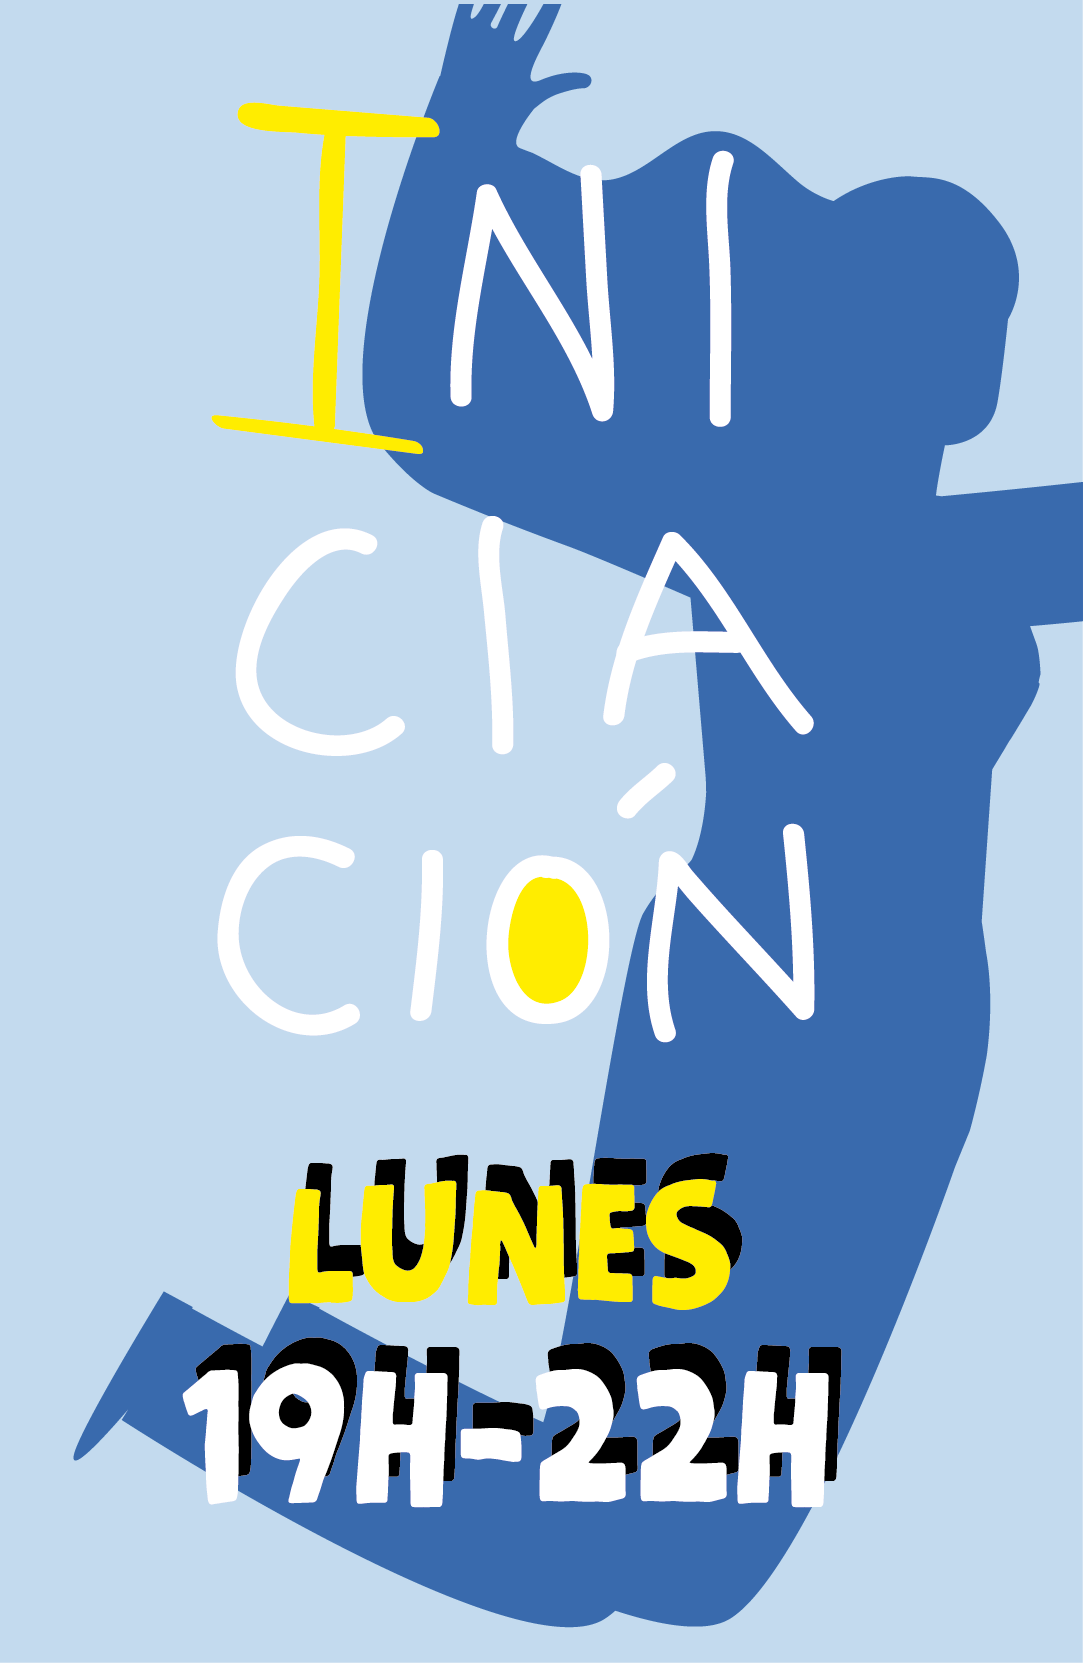 cuadro_lunes_01.png